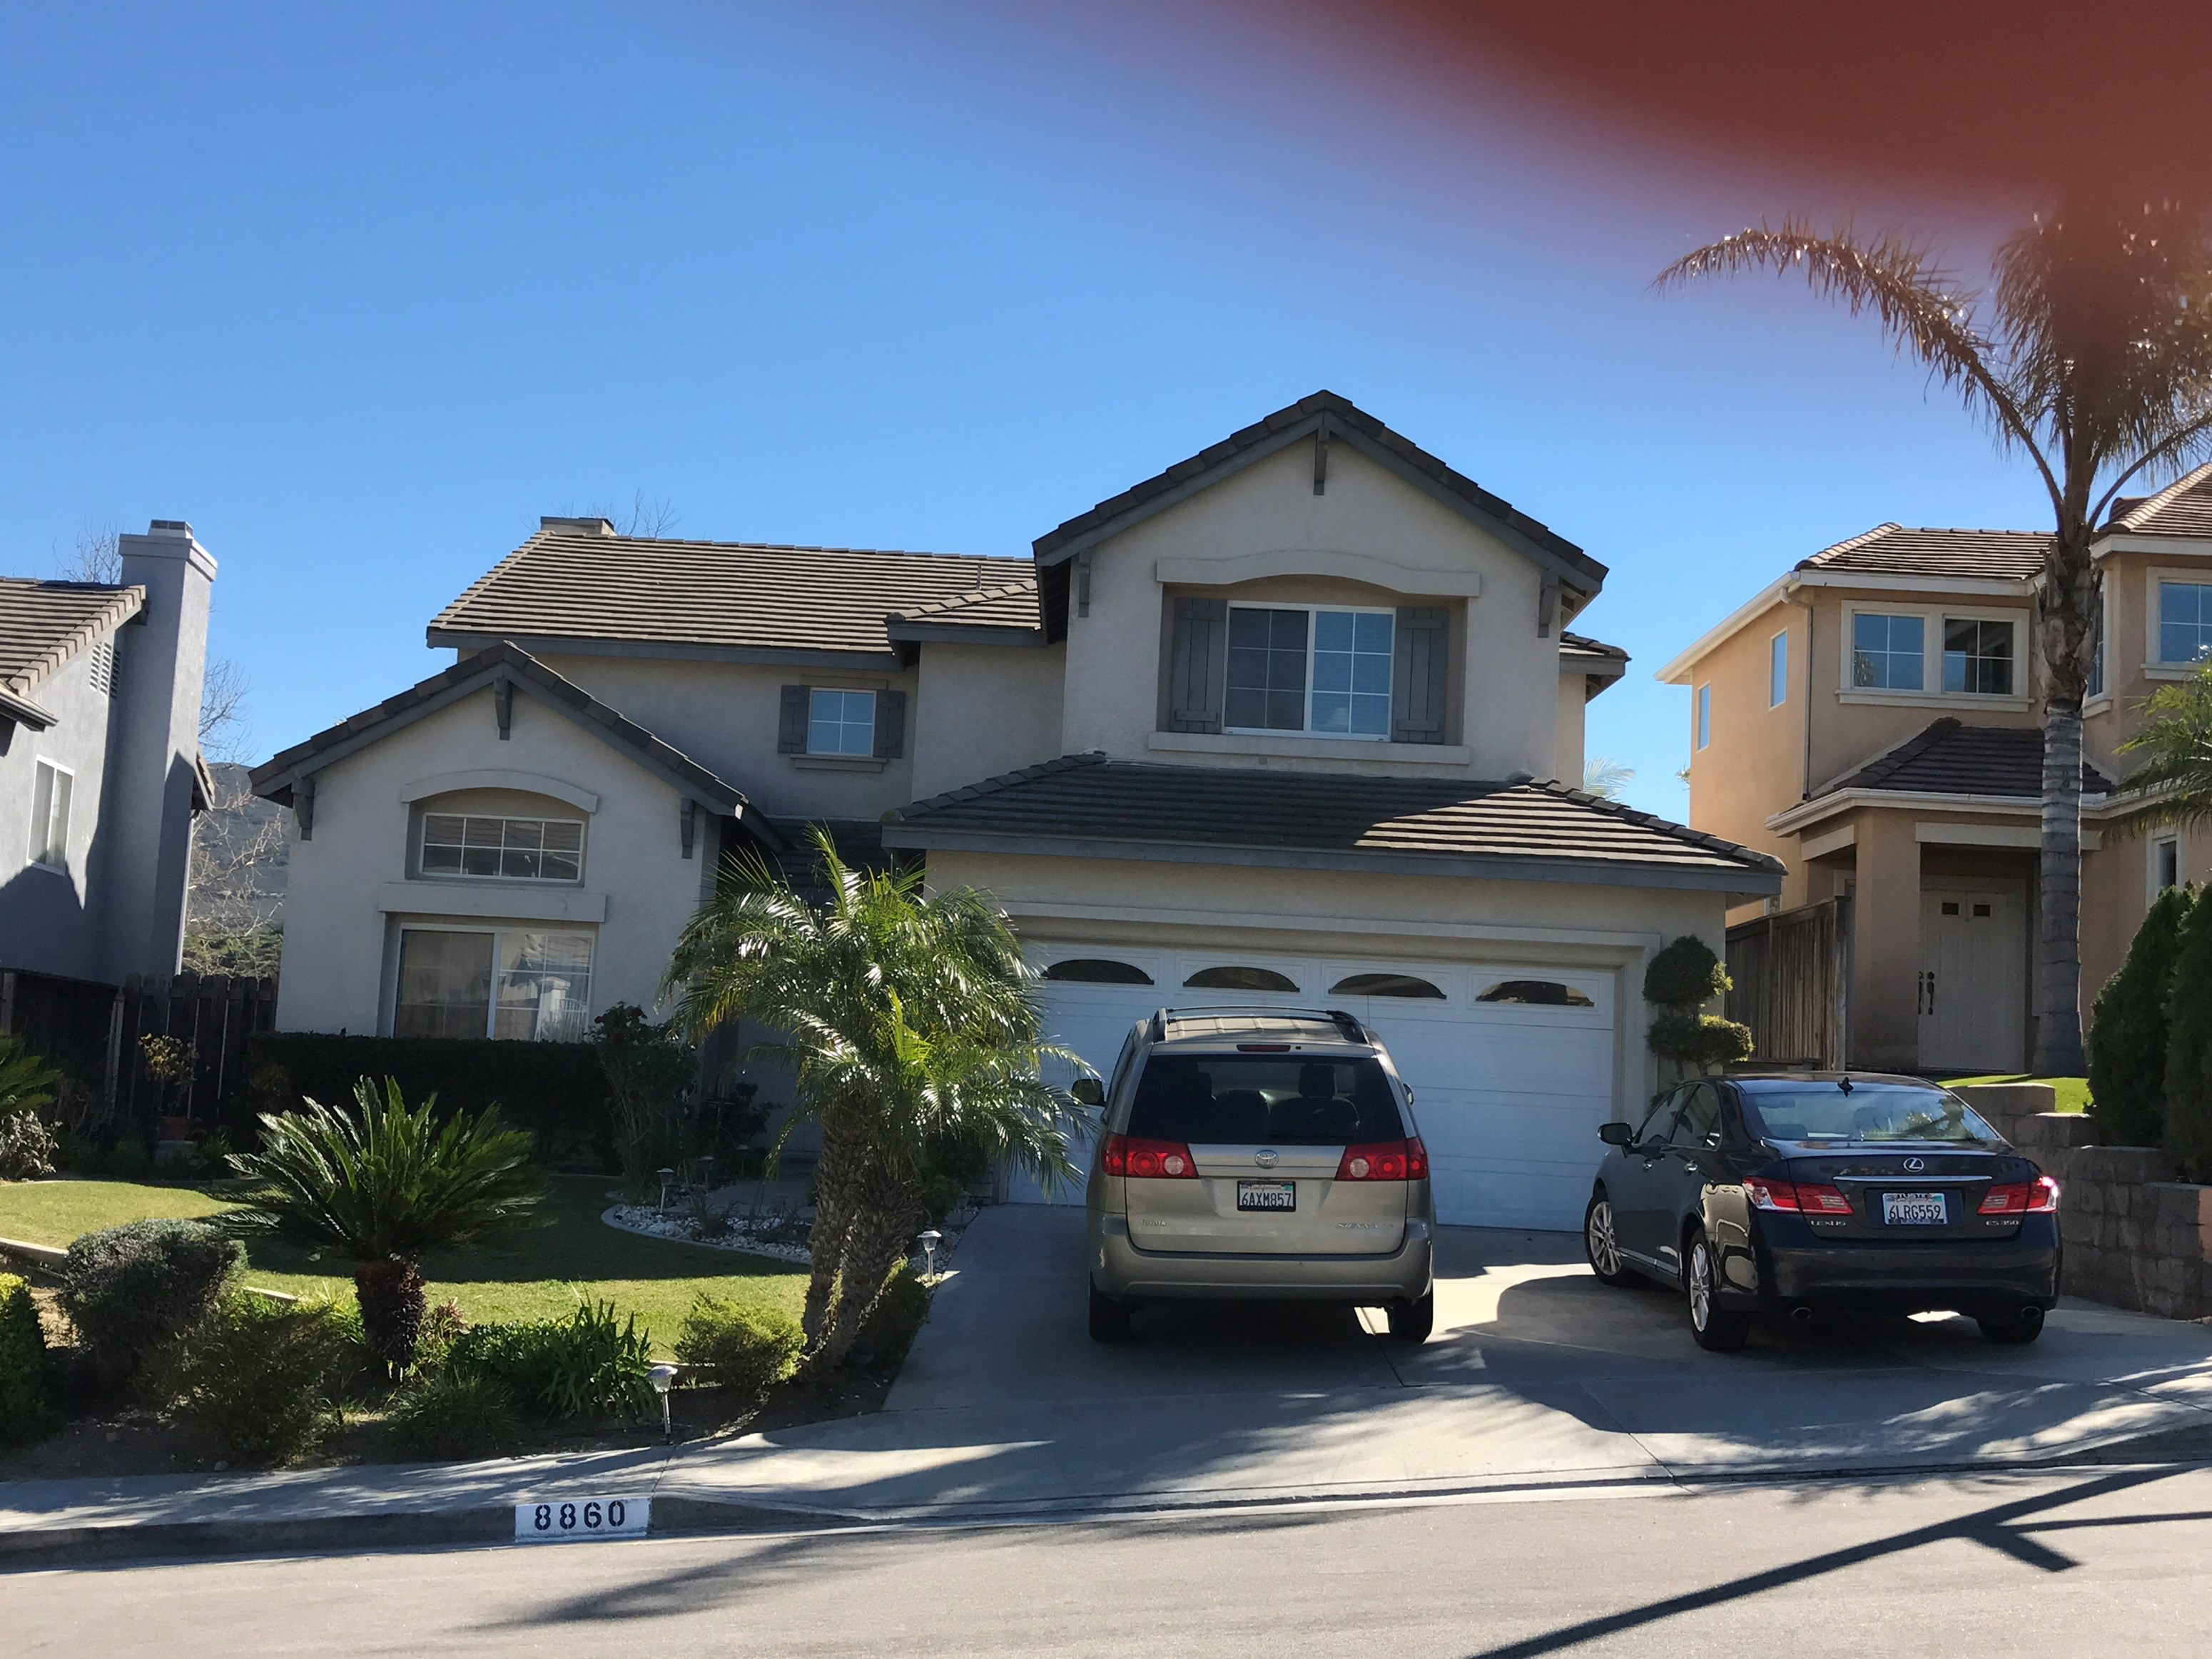 800 Single Room For Rent In Anaheim Hills Home In Anaheim Ca